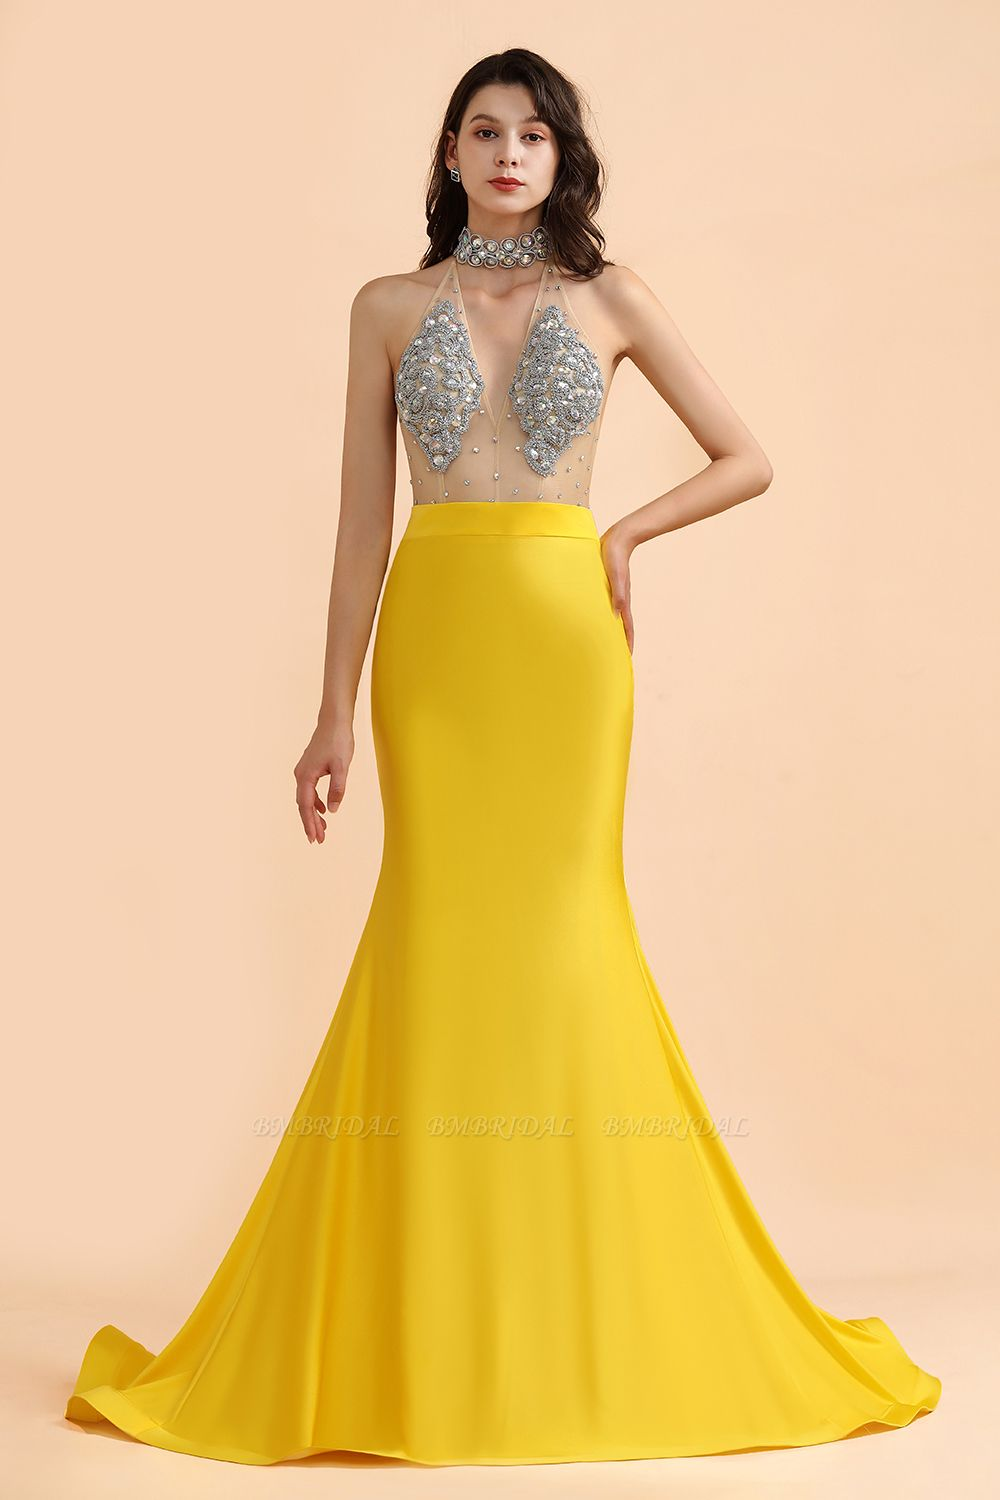 BMbridal Sexy Yellow Halter Backless Prom Dress Long Mermaid With Crystals